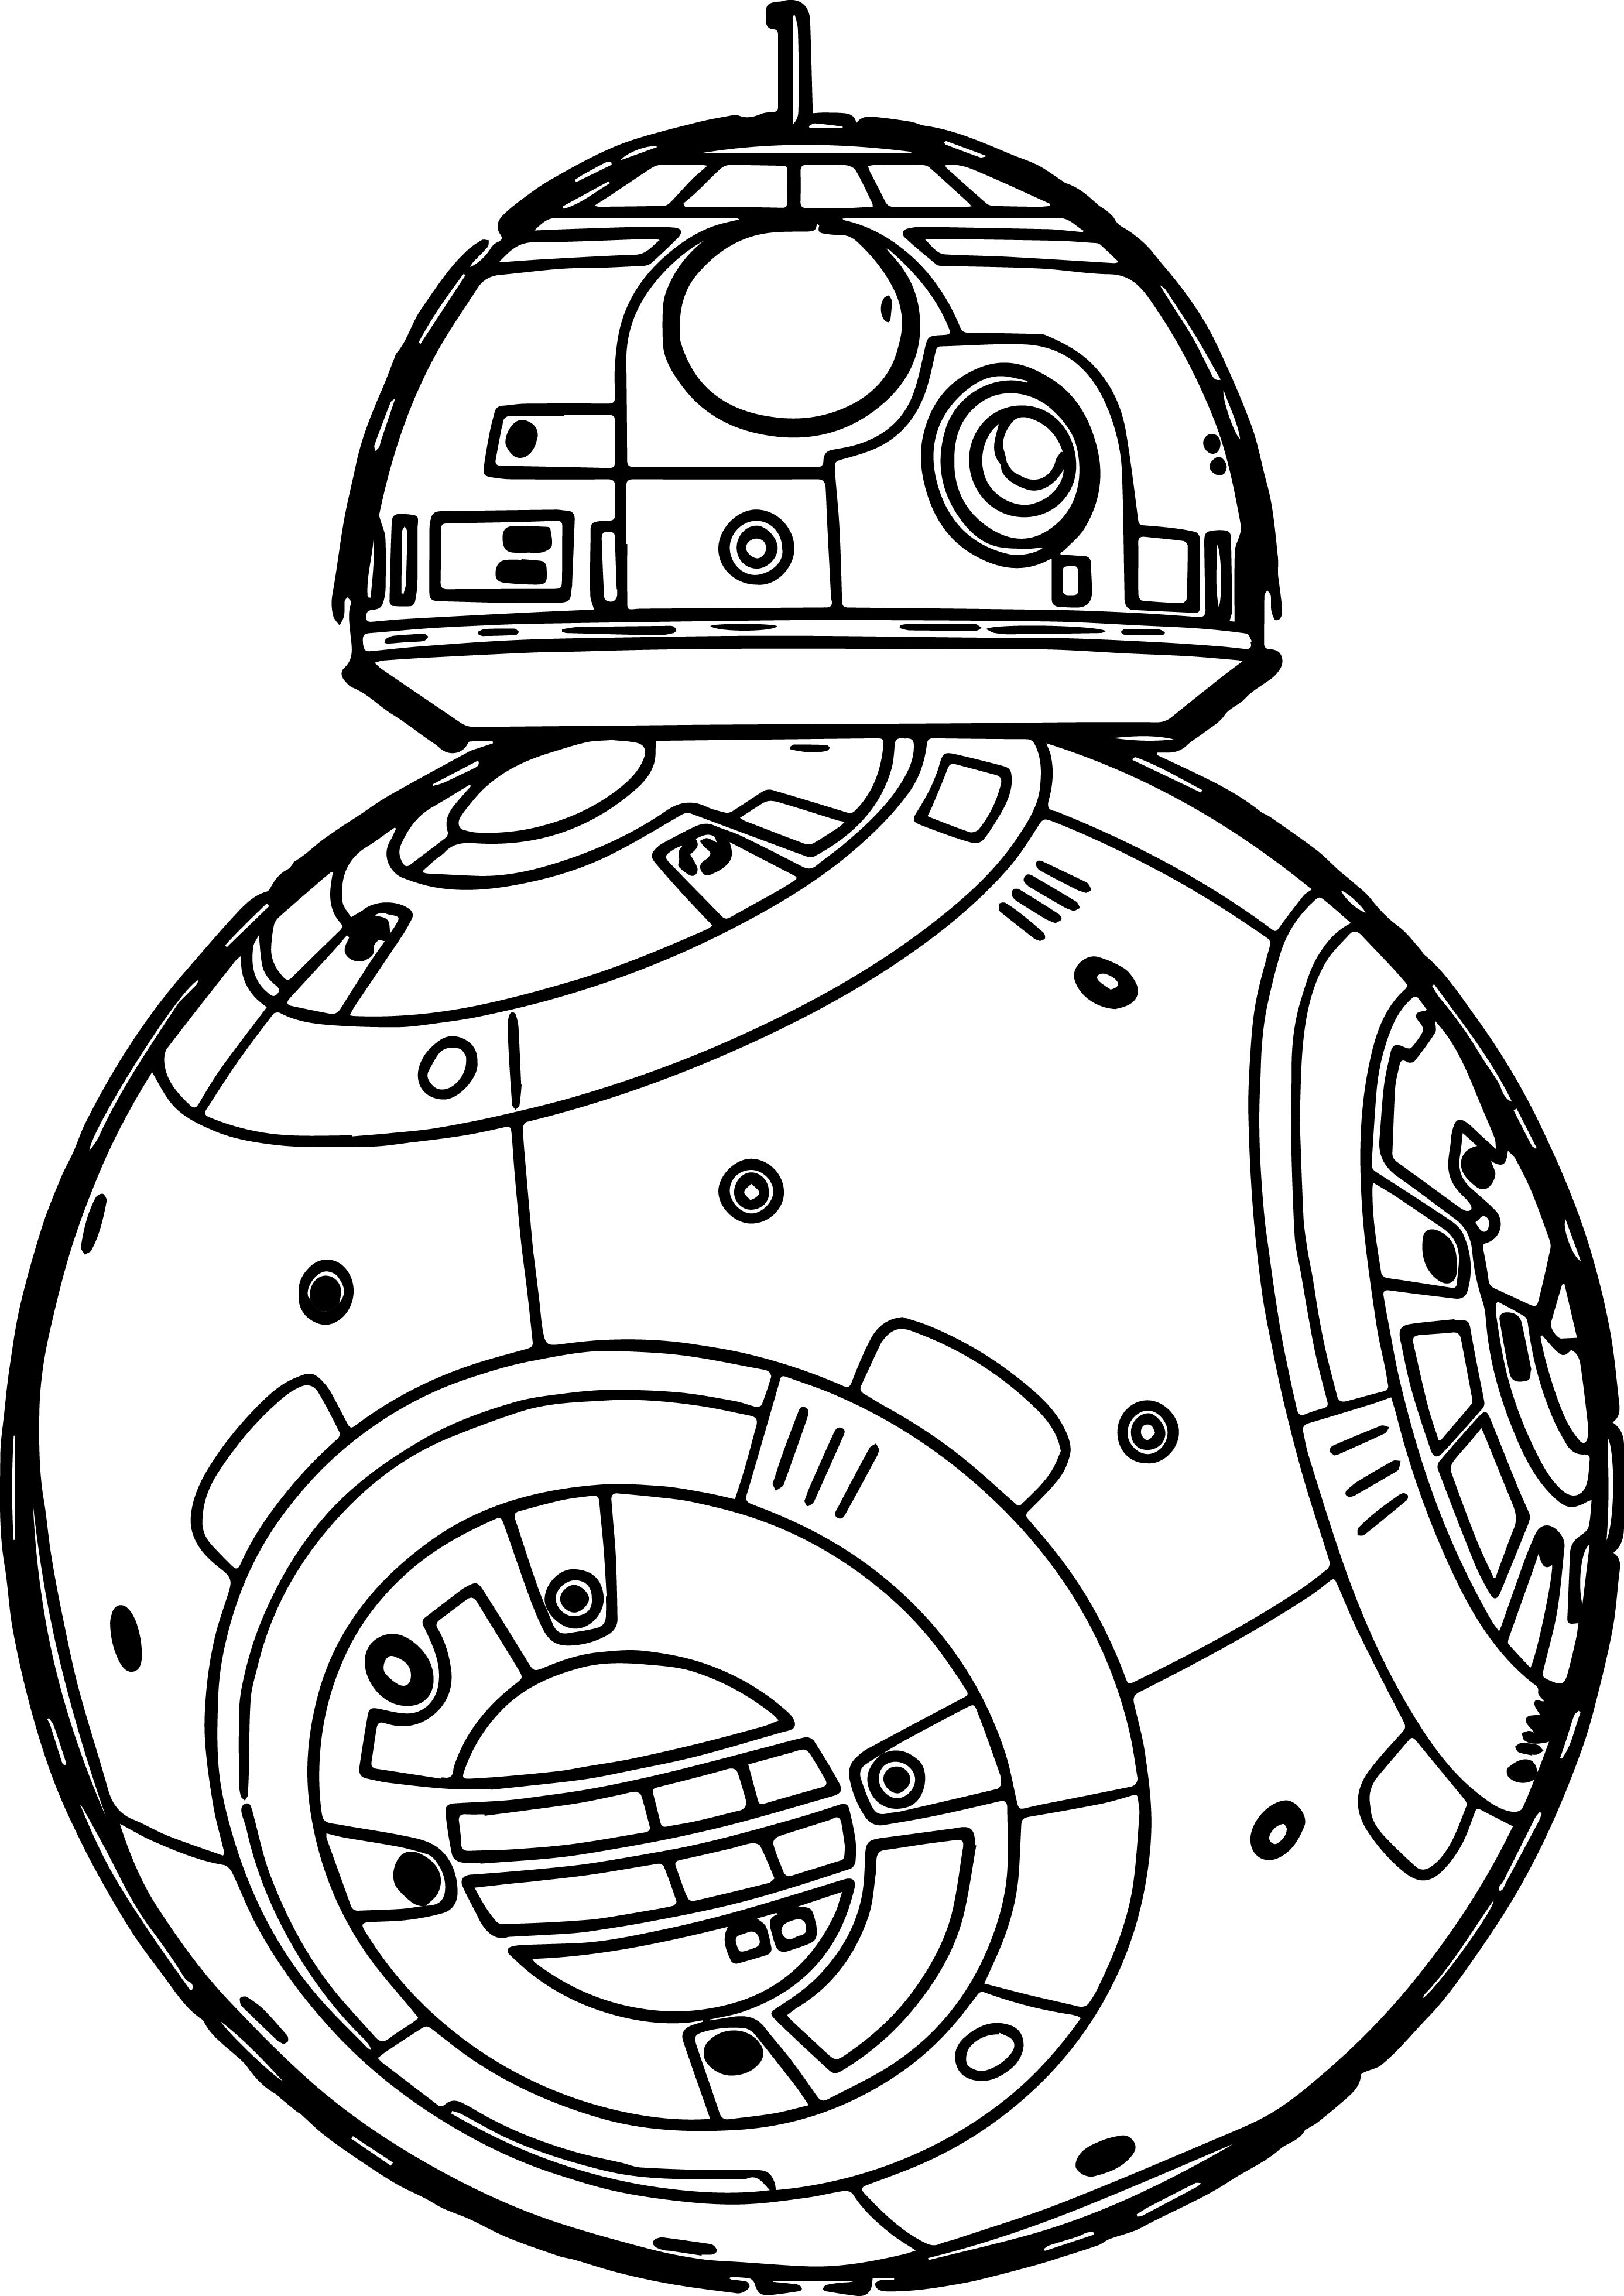 star wars pictures to print and color star wars to download star wars kids coloring pages pictures color print and wars to star